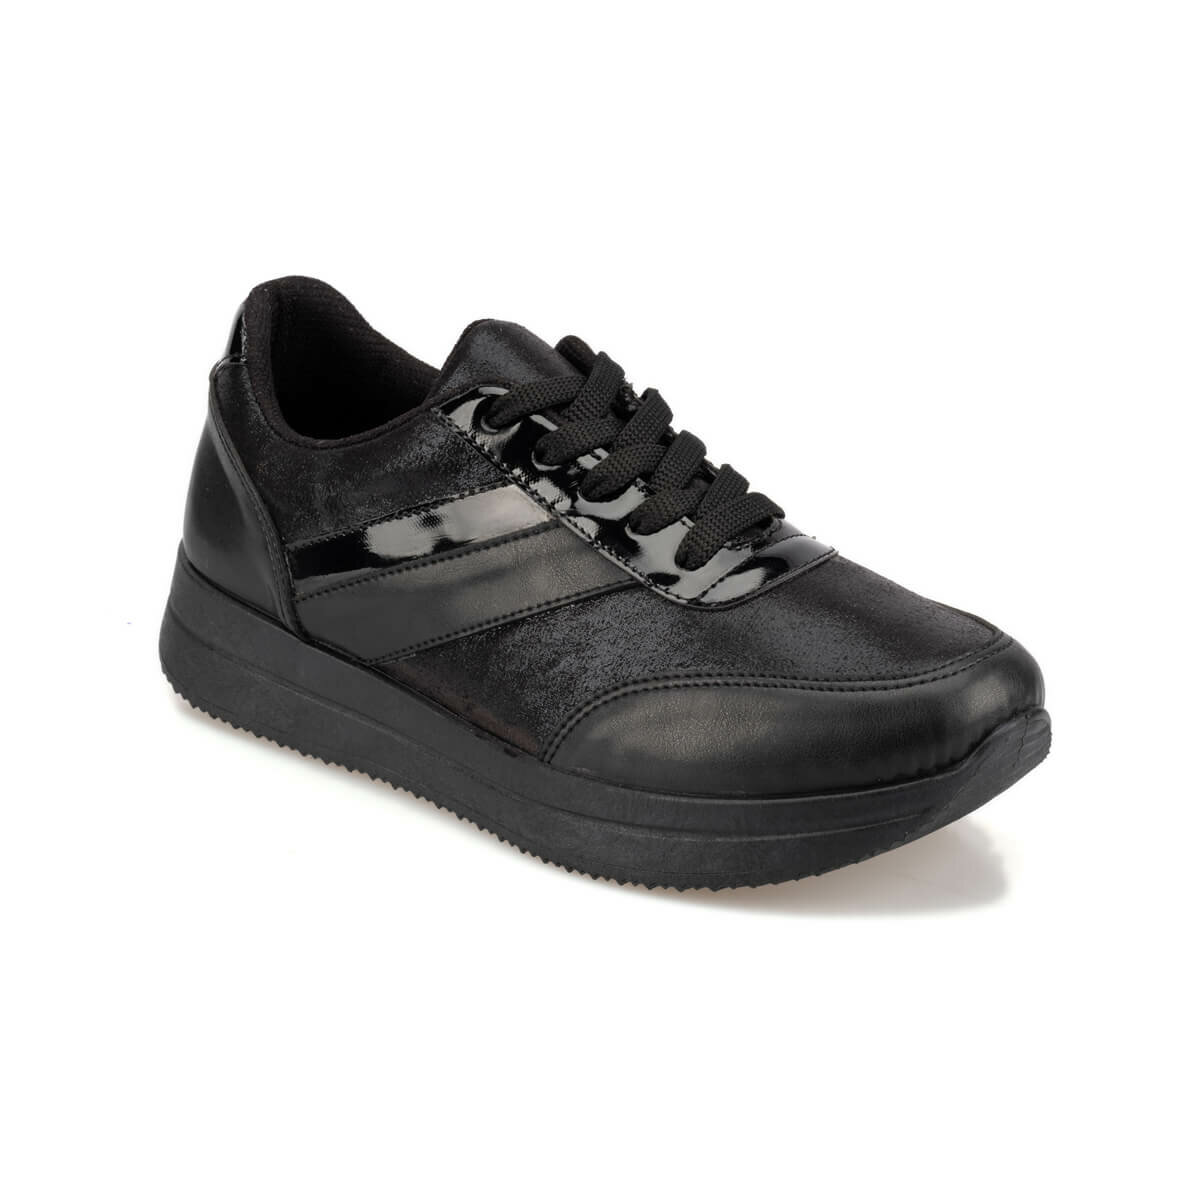 FLO 92.314867.Z Black Women Sneaker Polaris